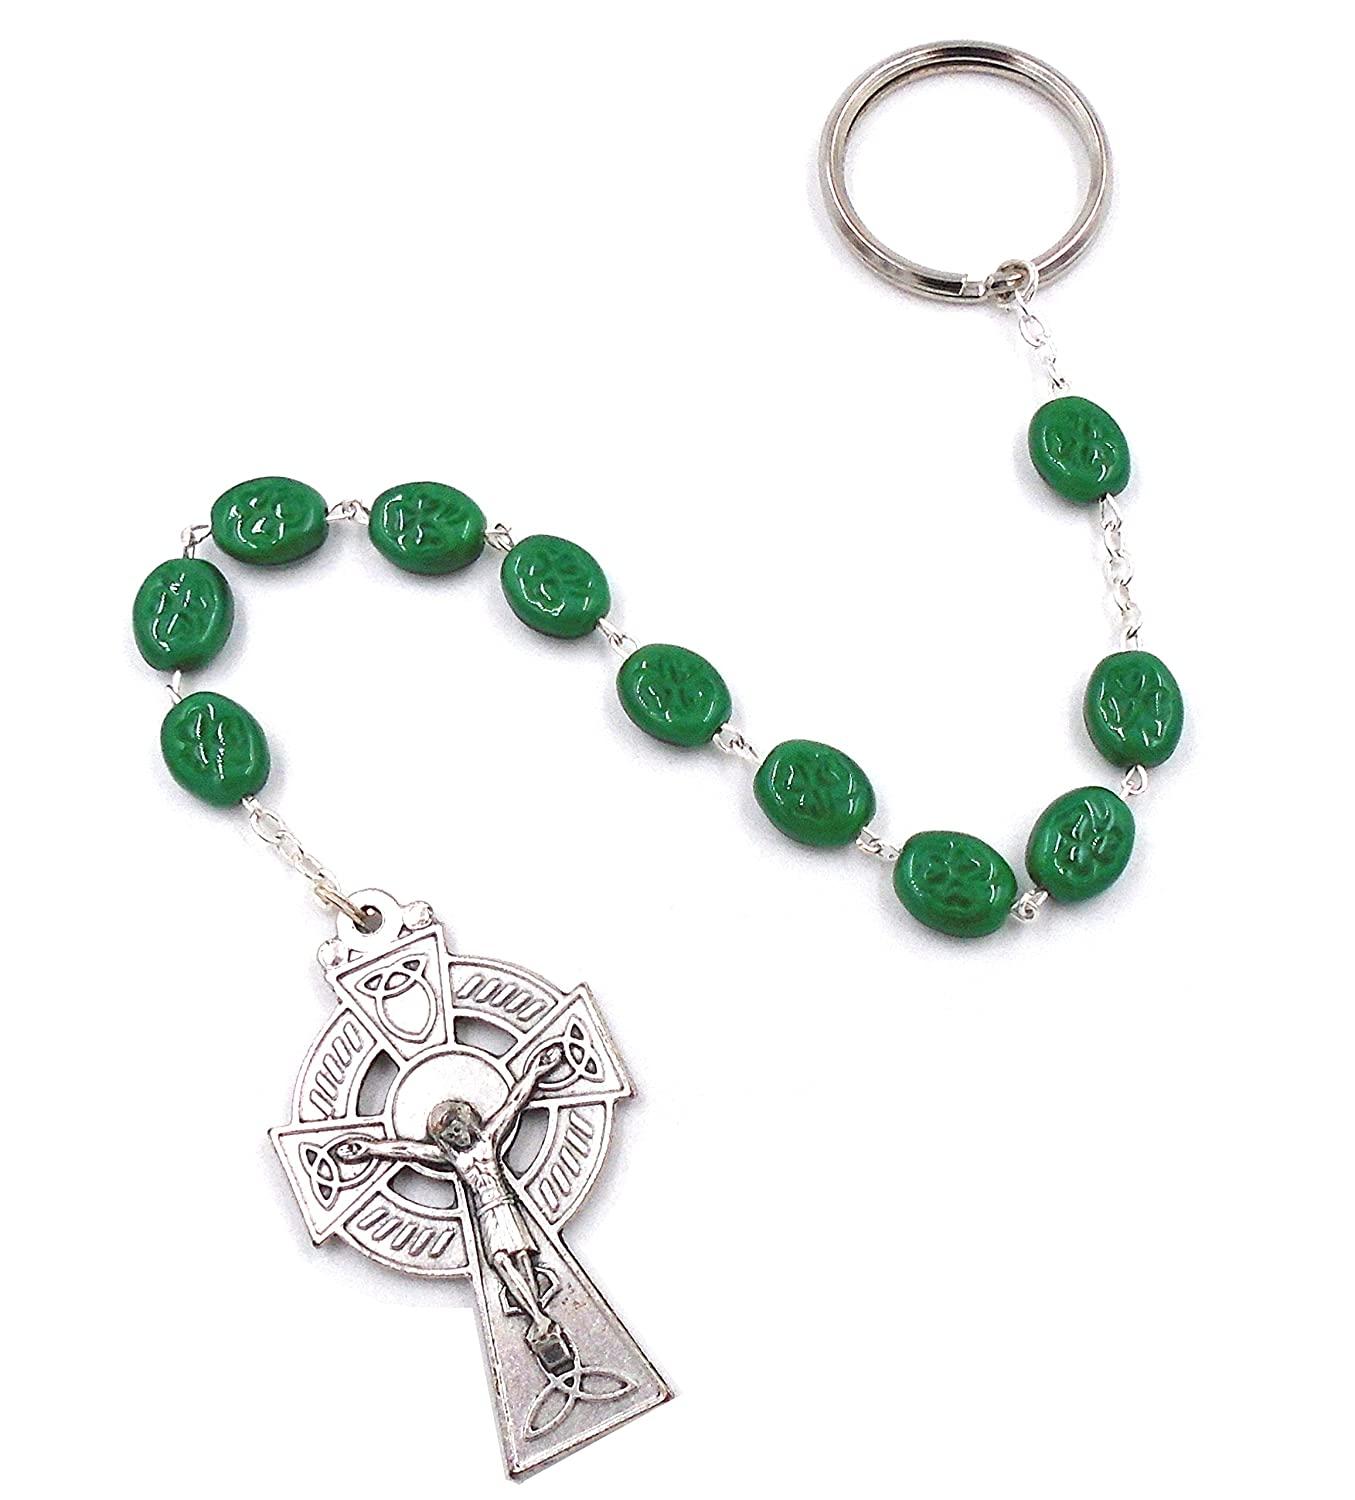 """Paidrin Beag"" Penal Rosary Keychain by J.C. Walsh & Sons- Made In Ireland"